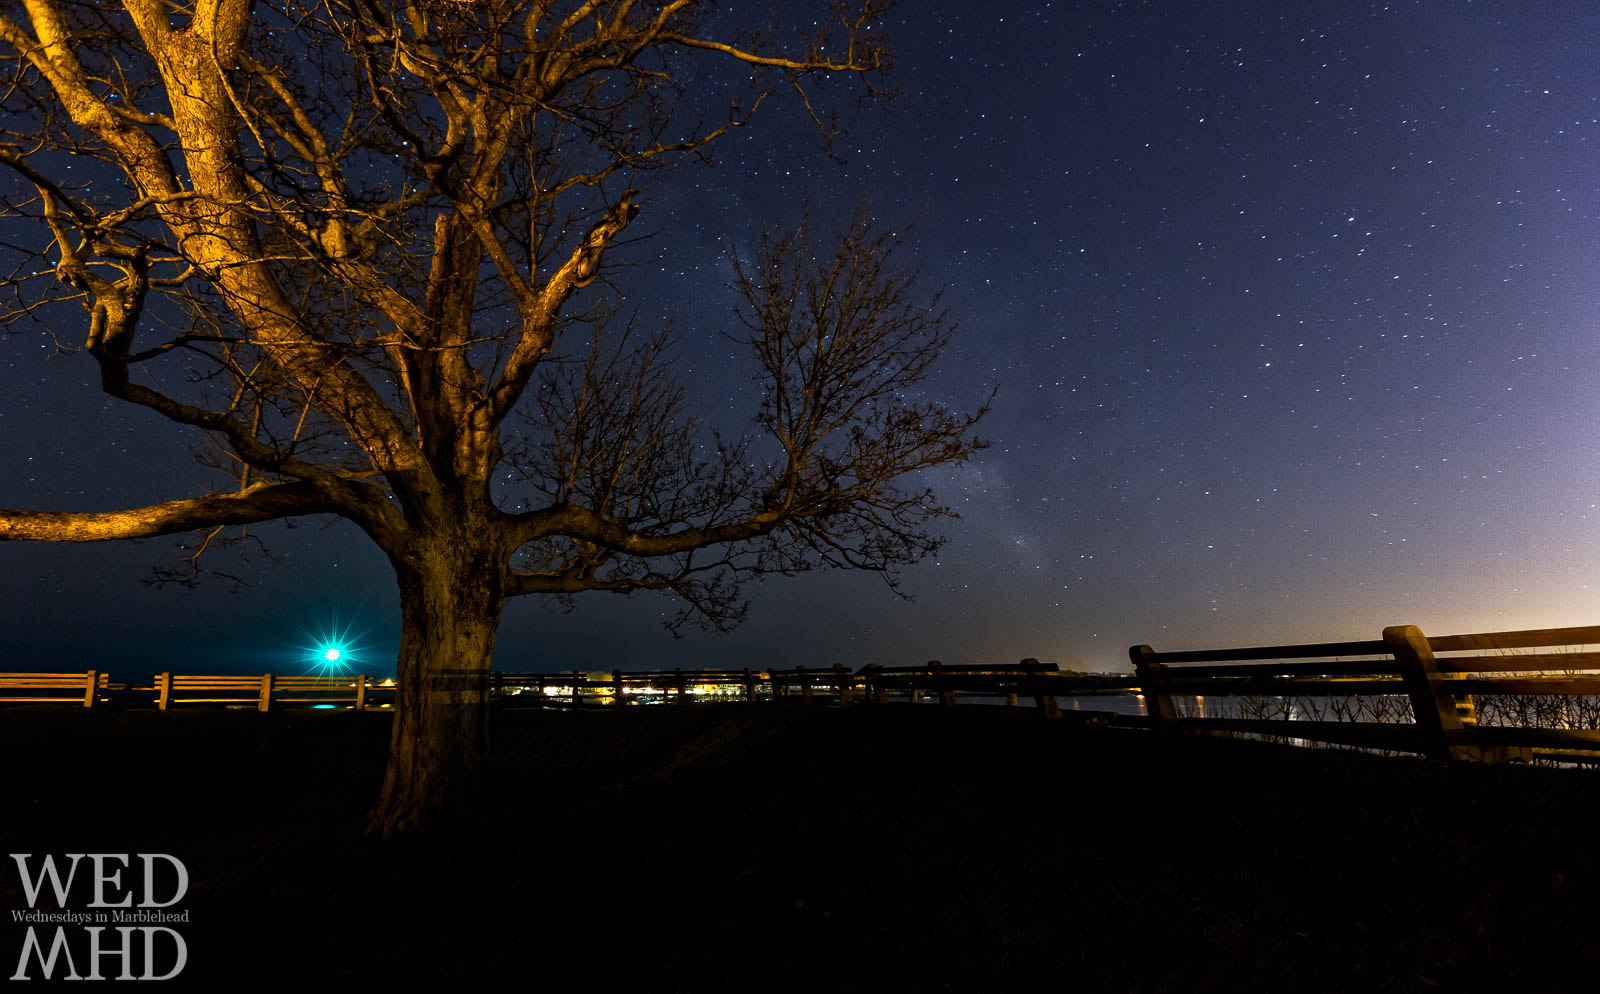 The night sky is filled with stars and a hint of the Milky Way in this view from Fort Sewall